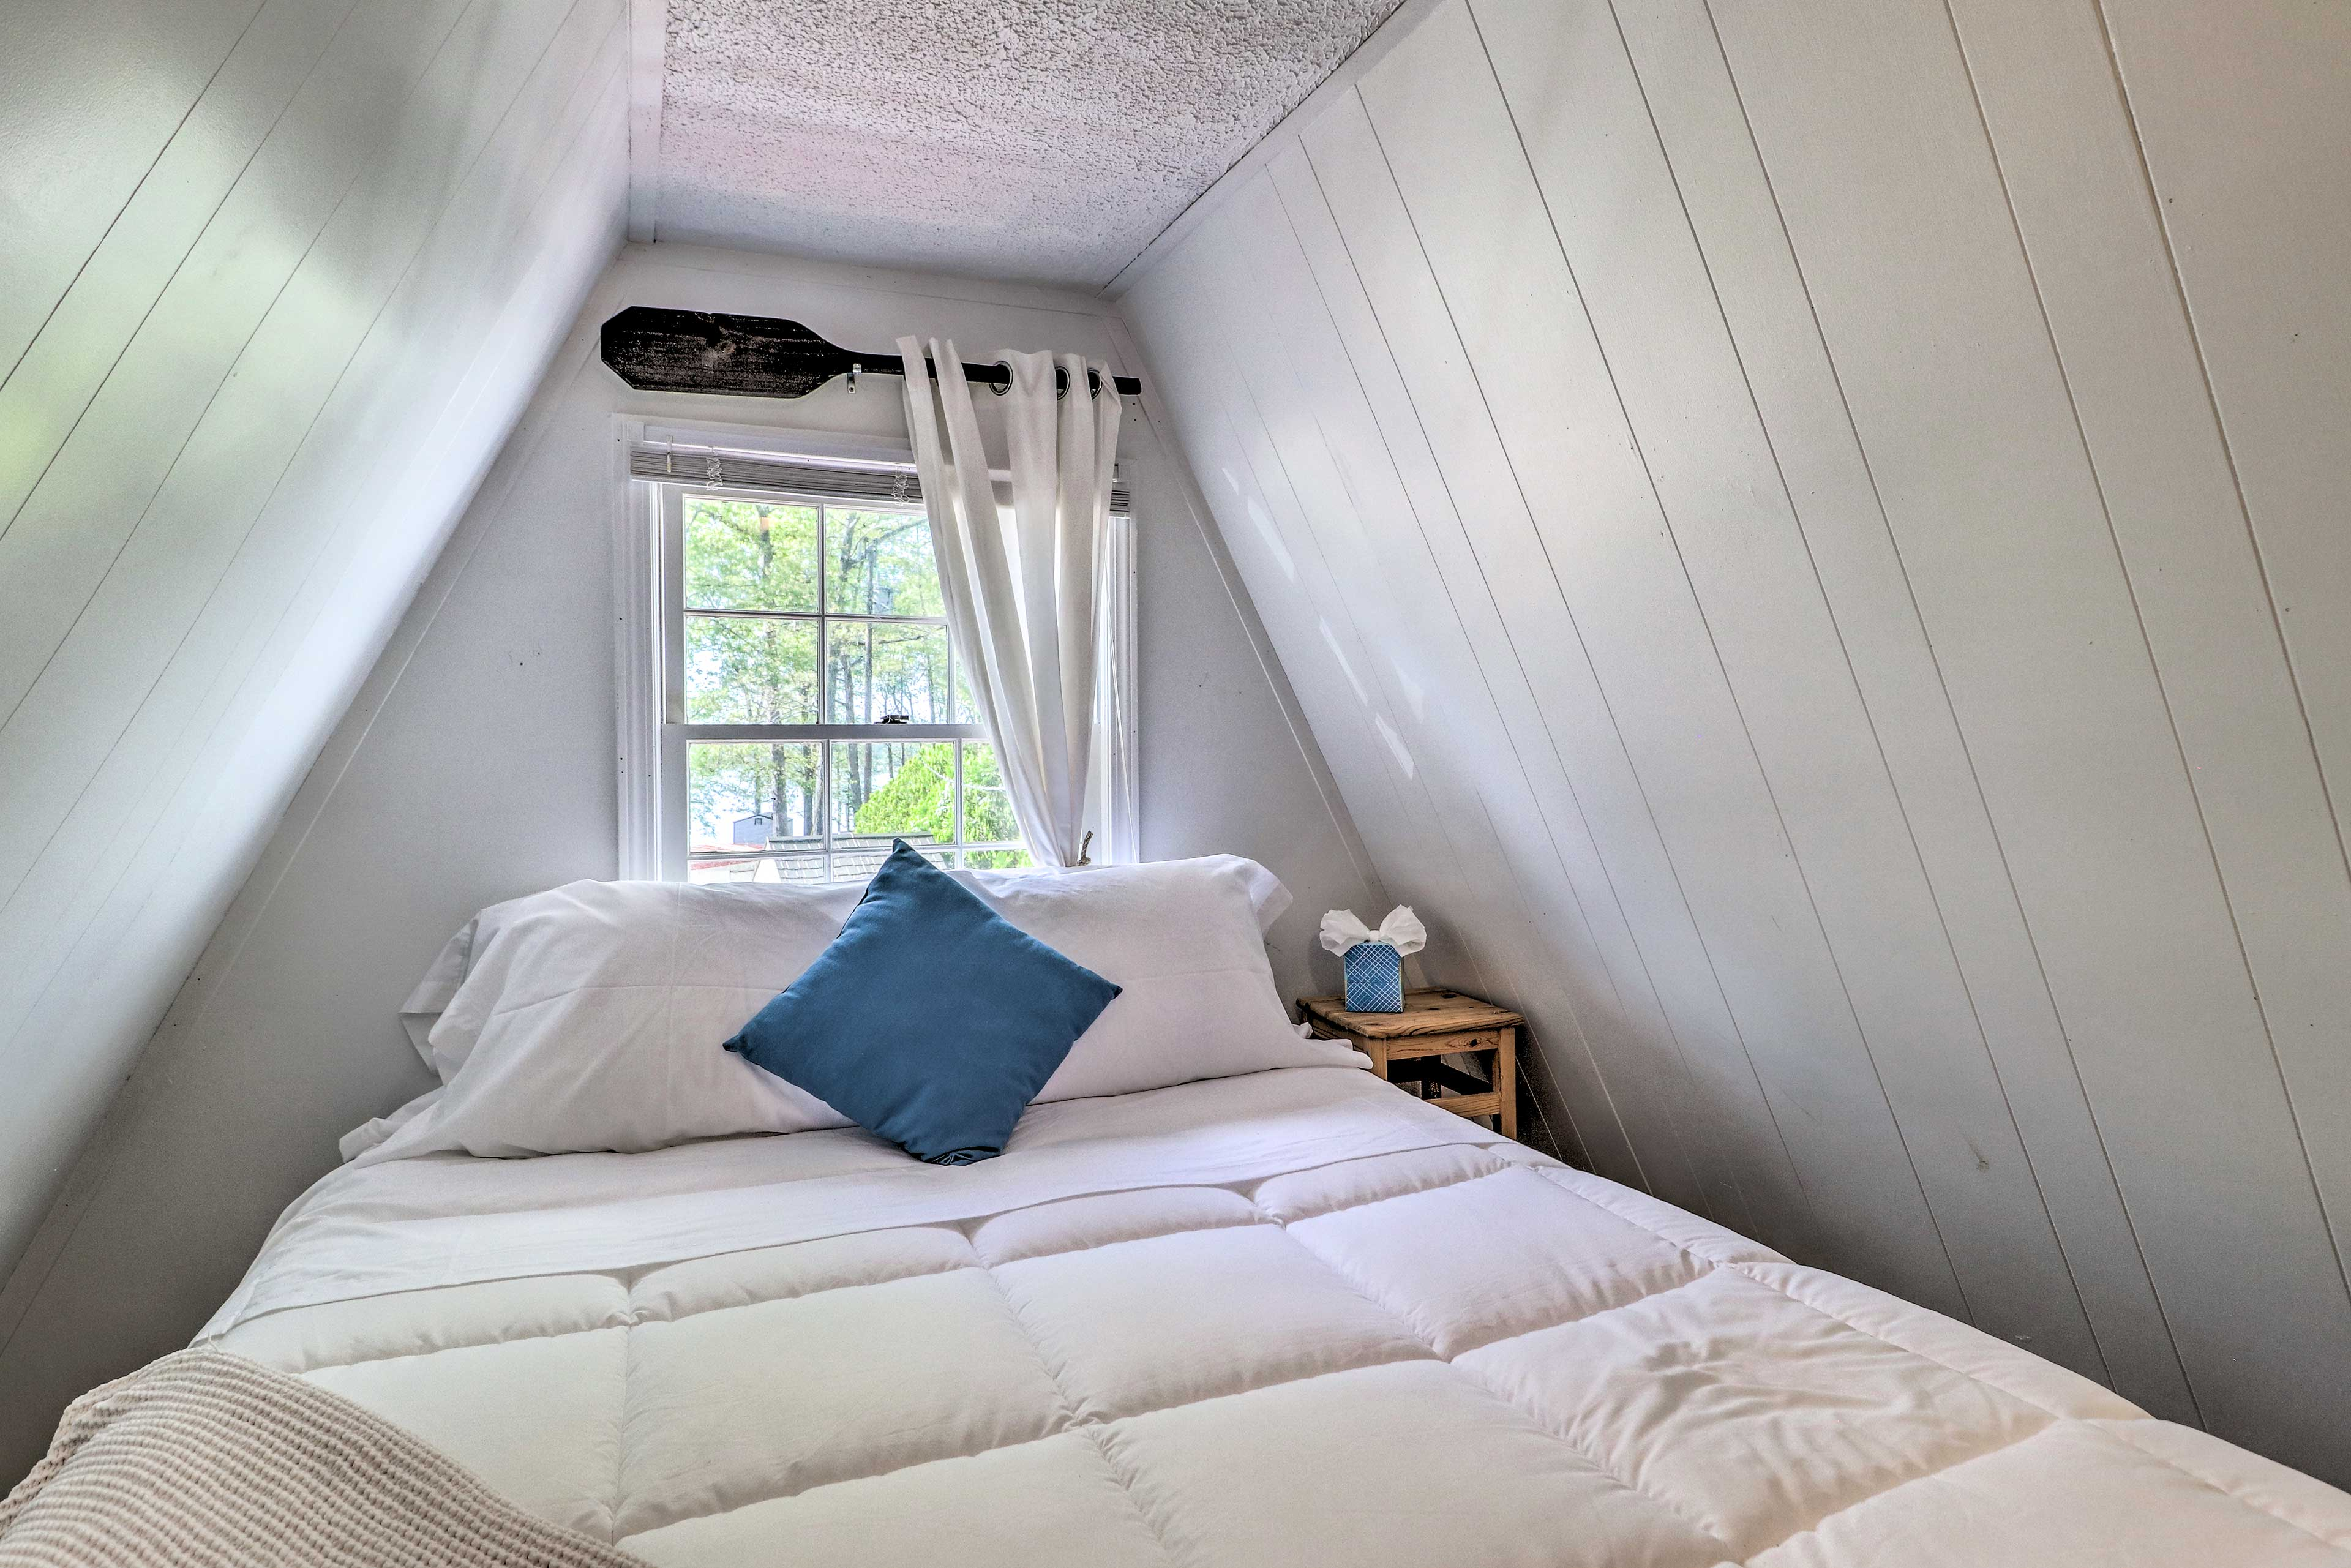 2 can nap in this cozy bedroom.